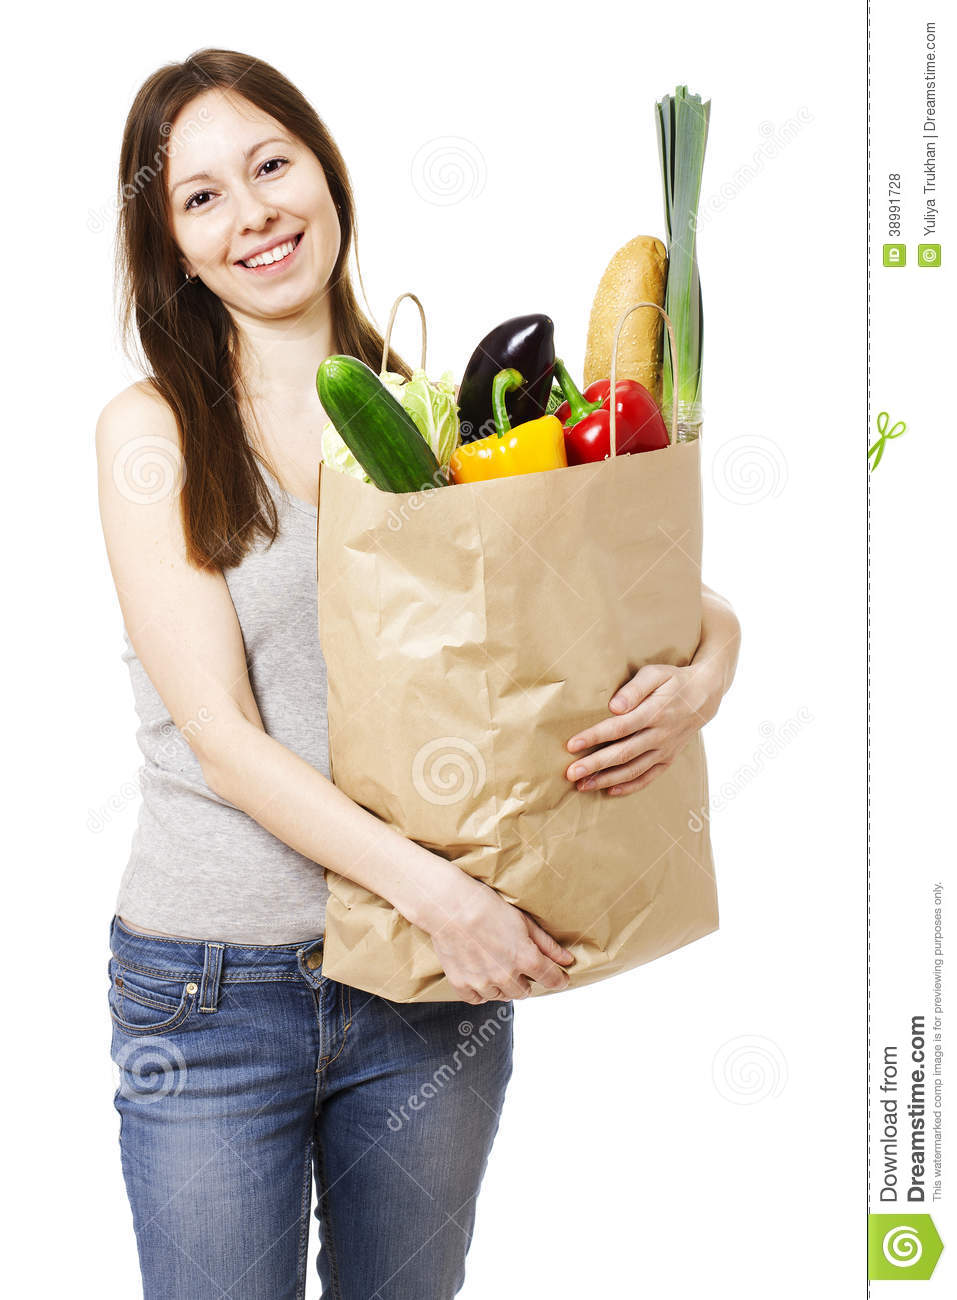 Innovative Young Smiling Woman Holding Shopping Bags Royalty Free Stock Photo - Image 27321605